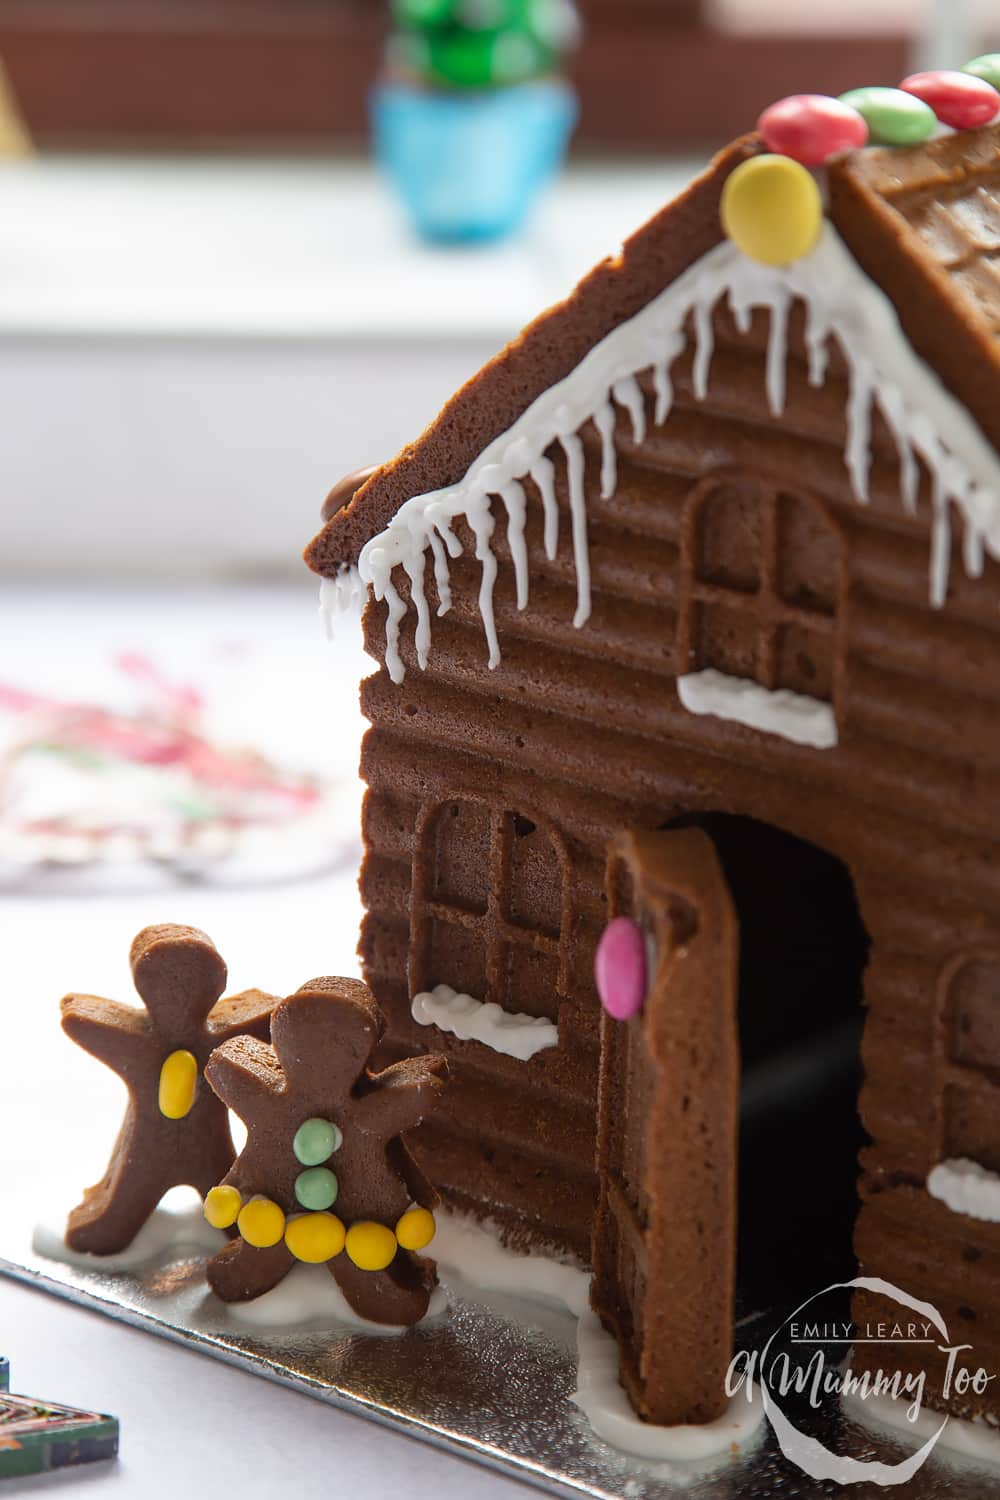 A gingerbread house in close up. The focus is on two gingerbread people, decorated with mini chocolate beans.